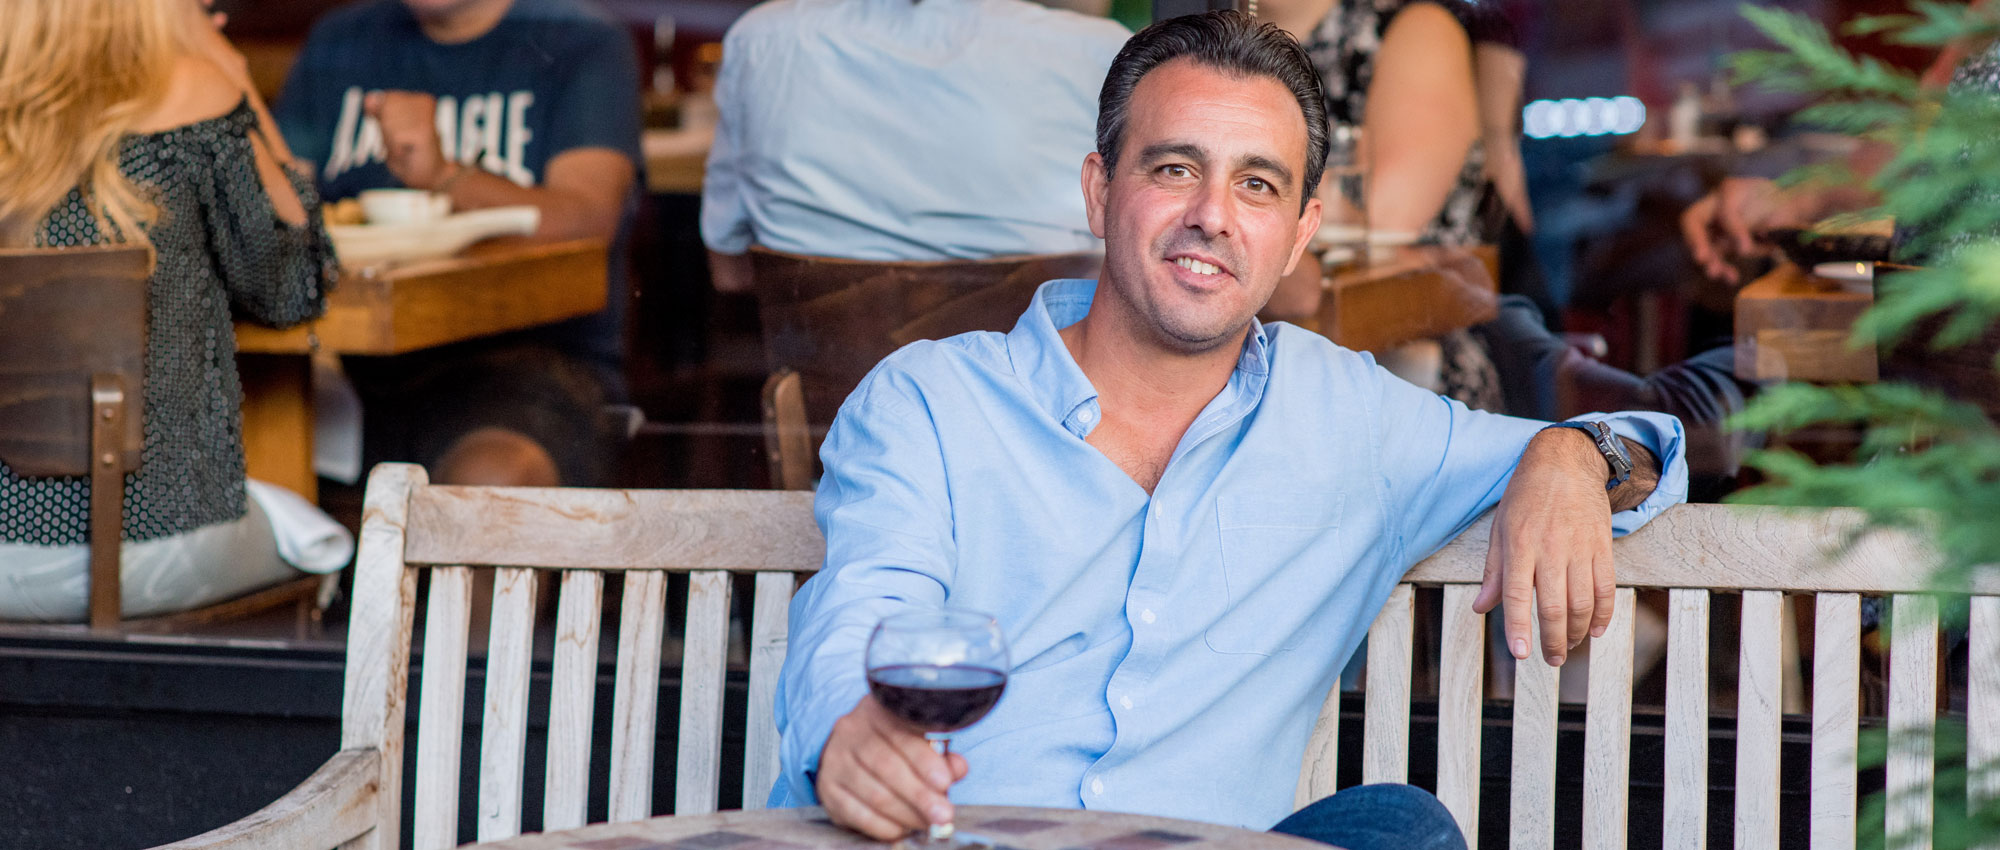 italian man sitting on a wooden bench drinking red wine